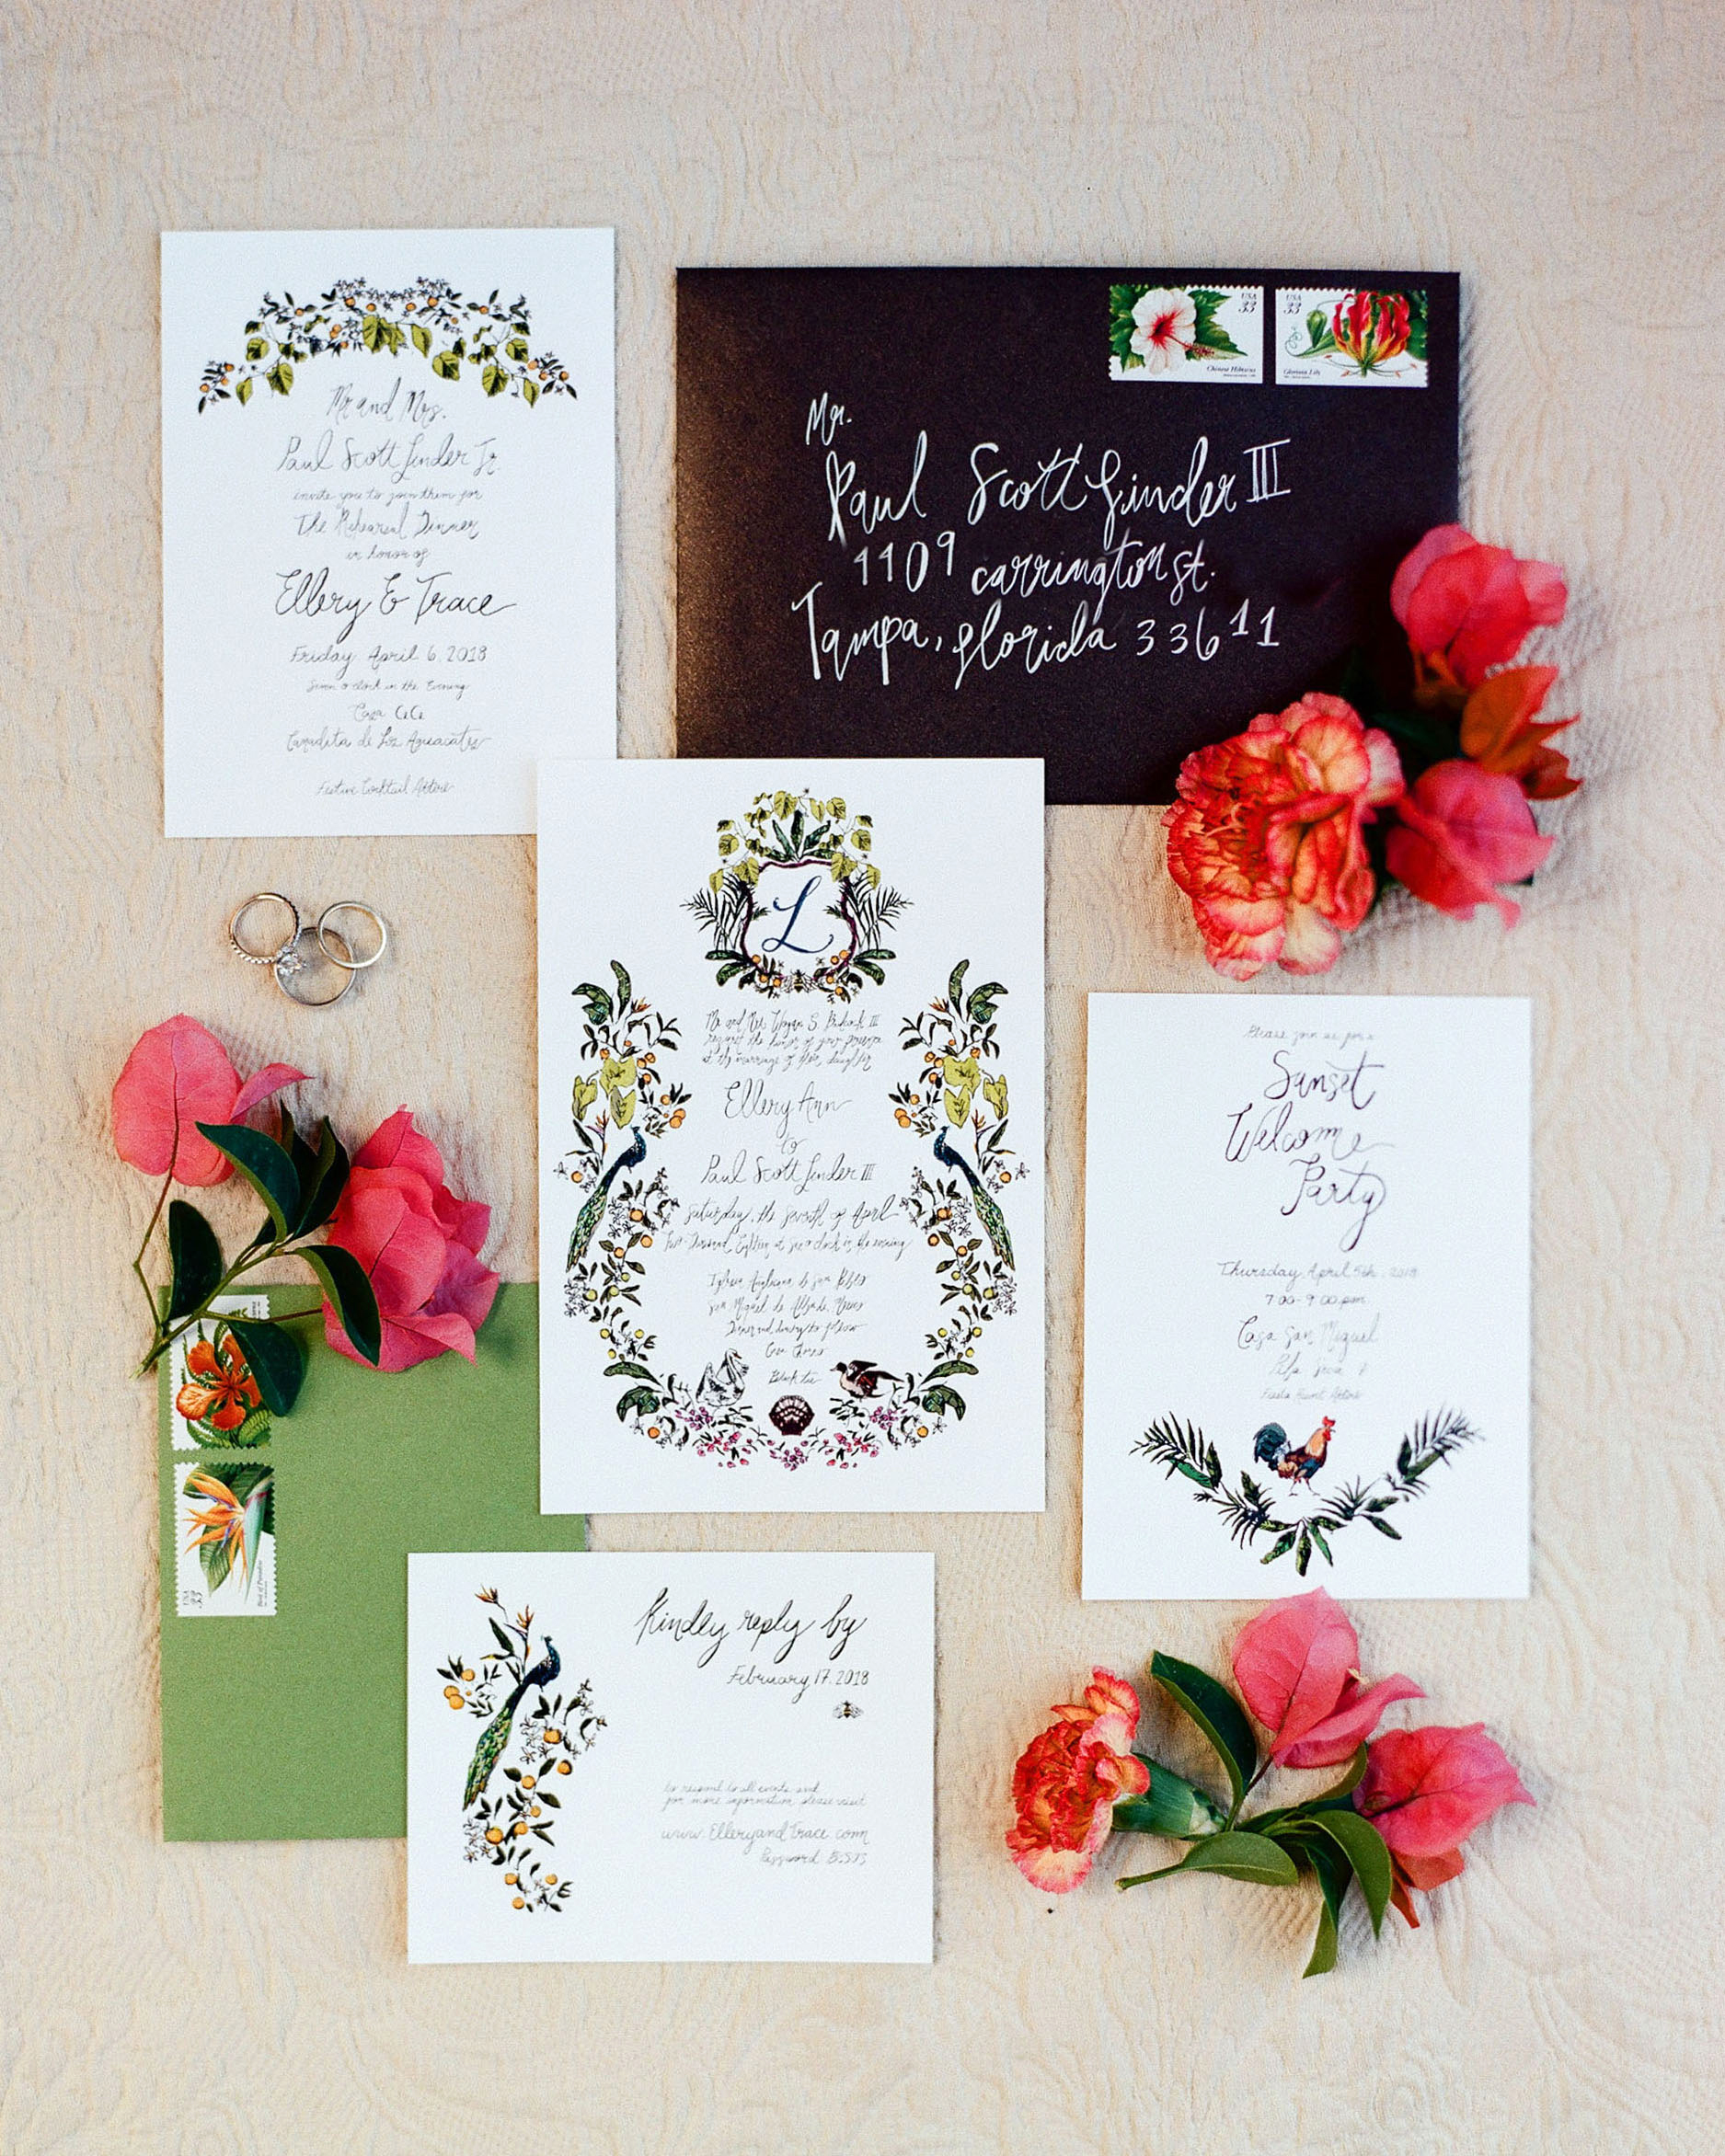 The Invitations